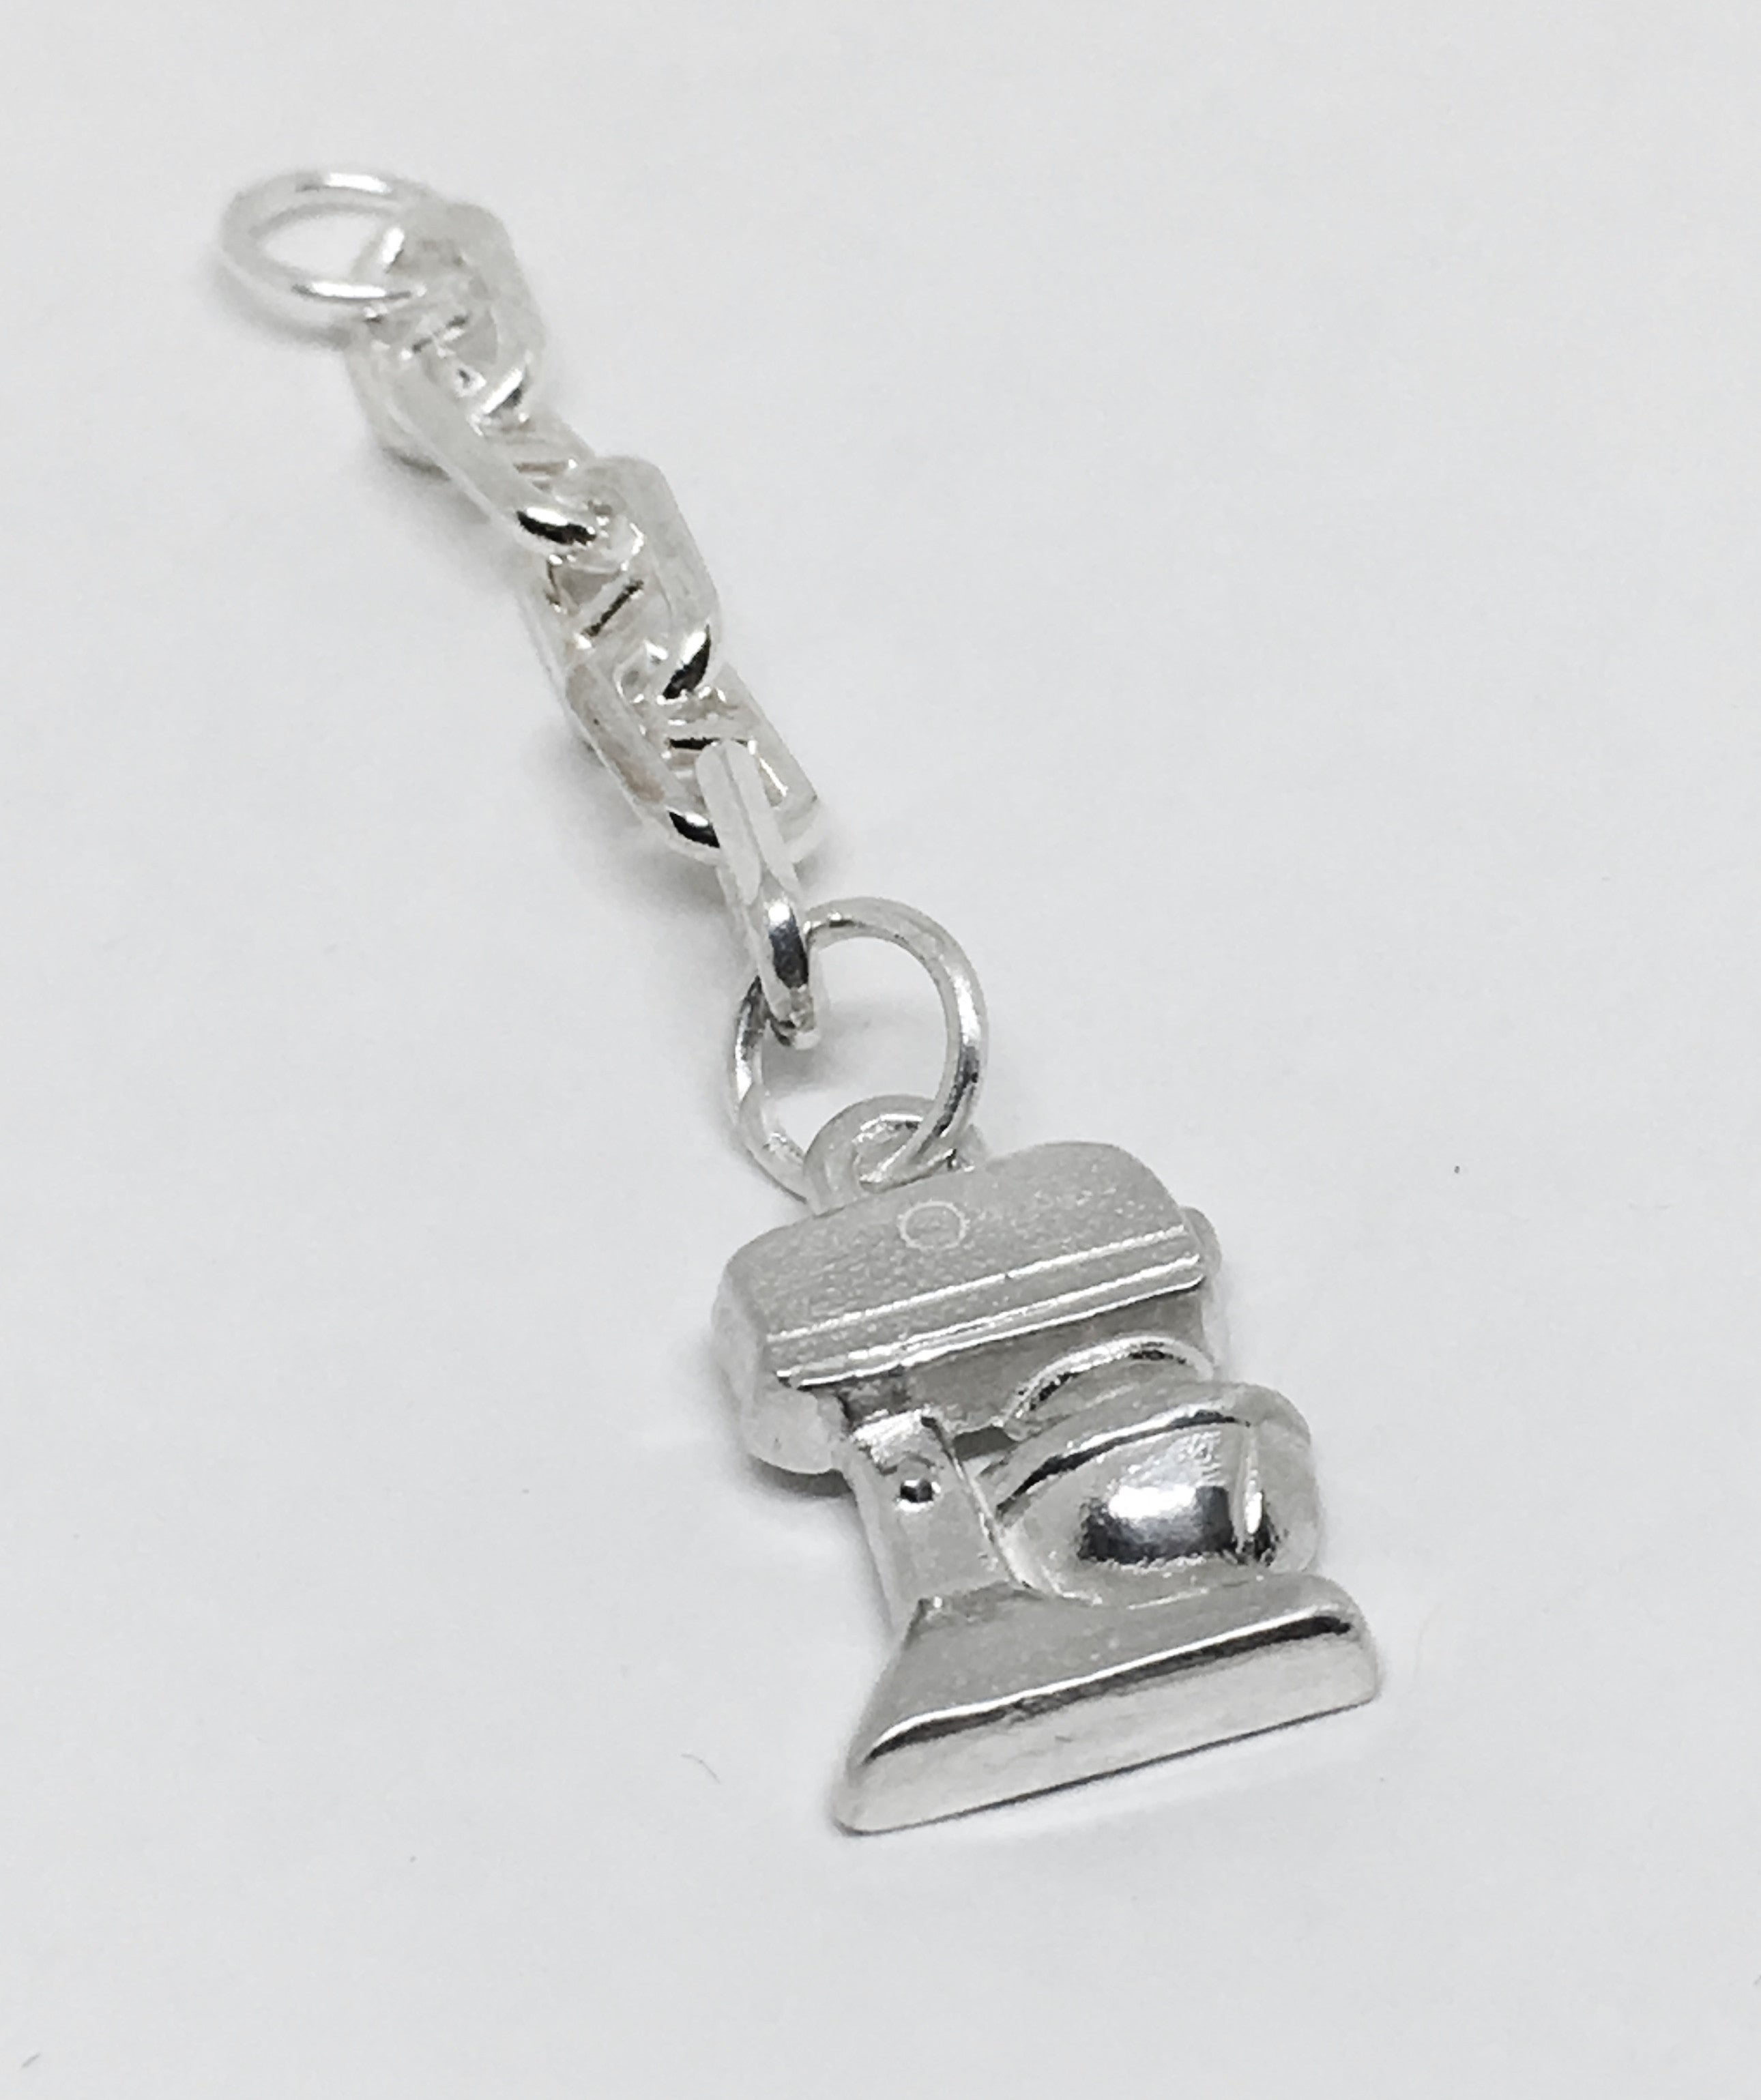 Baker's Standing Mixer Key Ring Charm in Sterling Silver